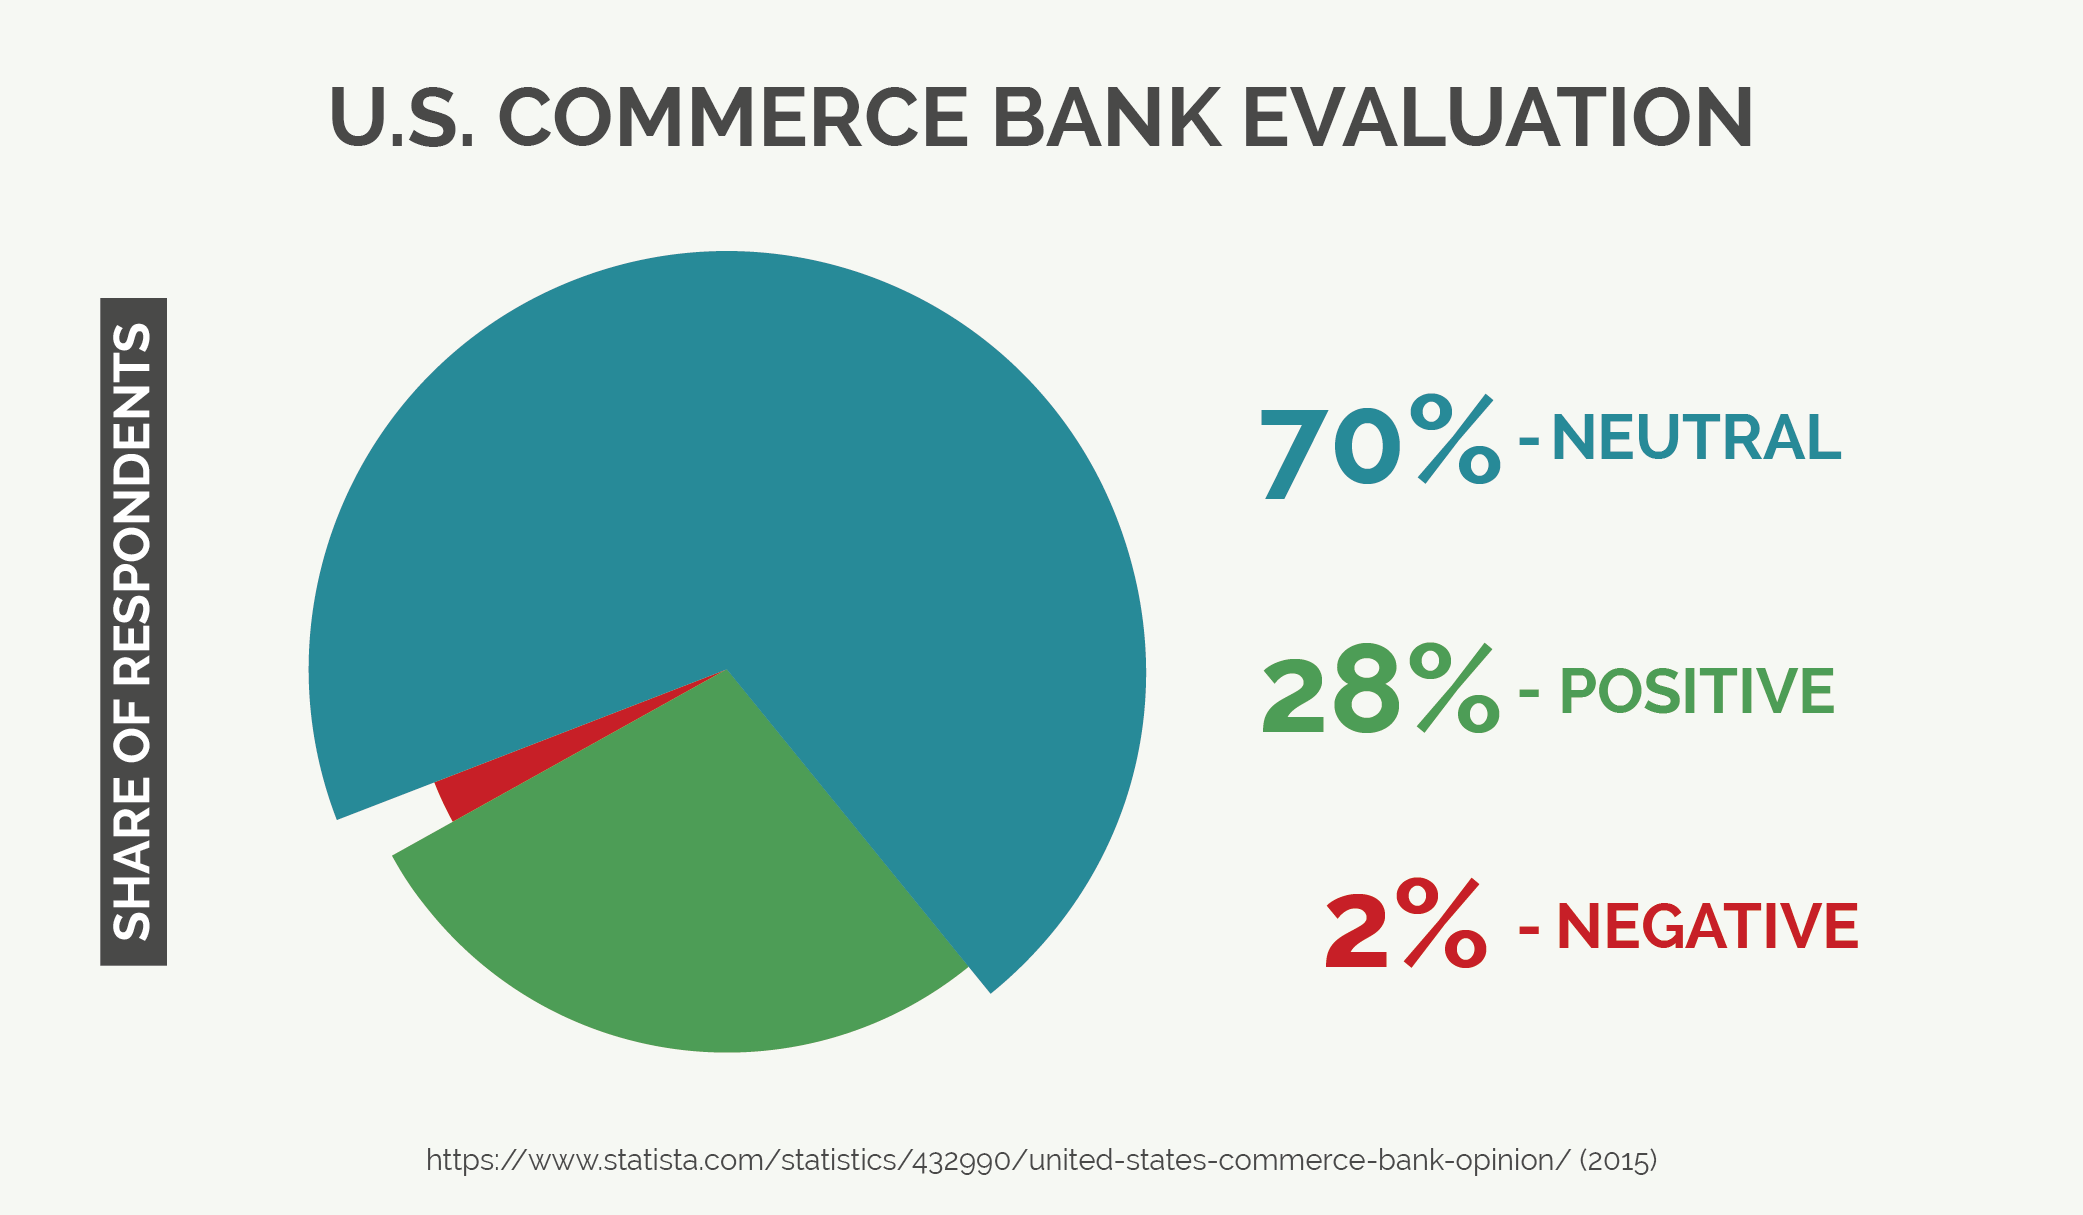 U.S. Commerce Bank Evaluation